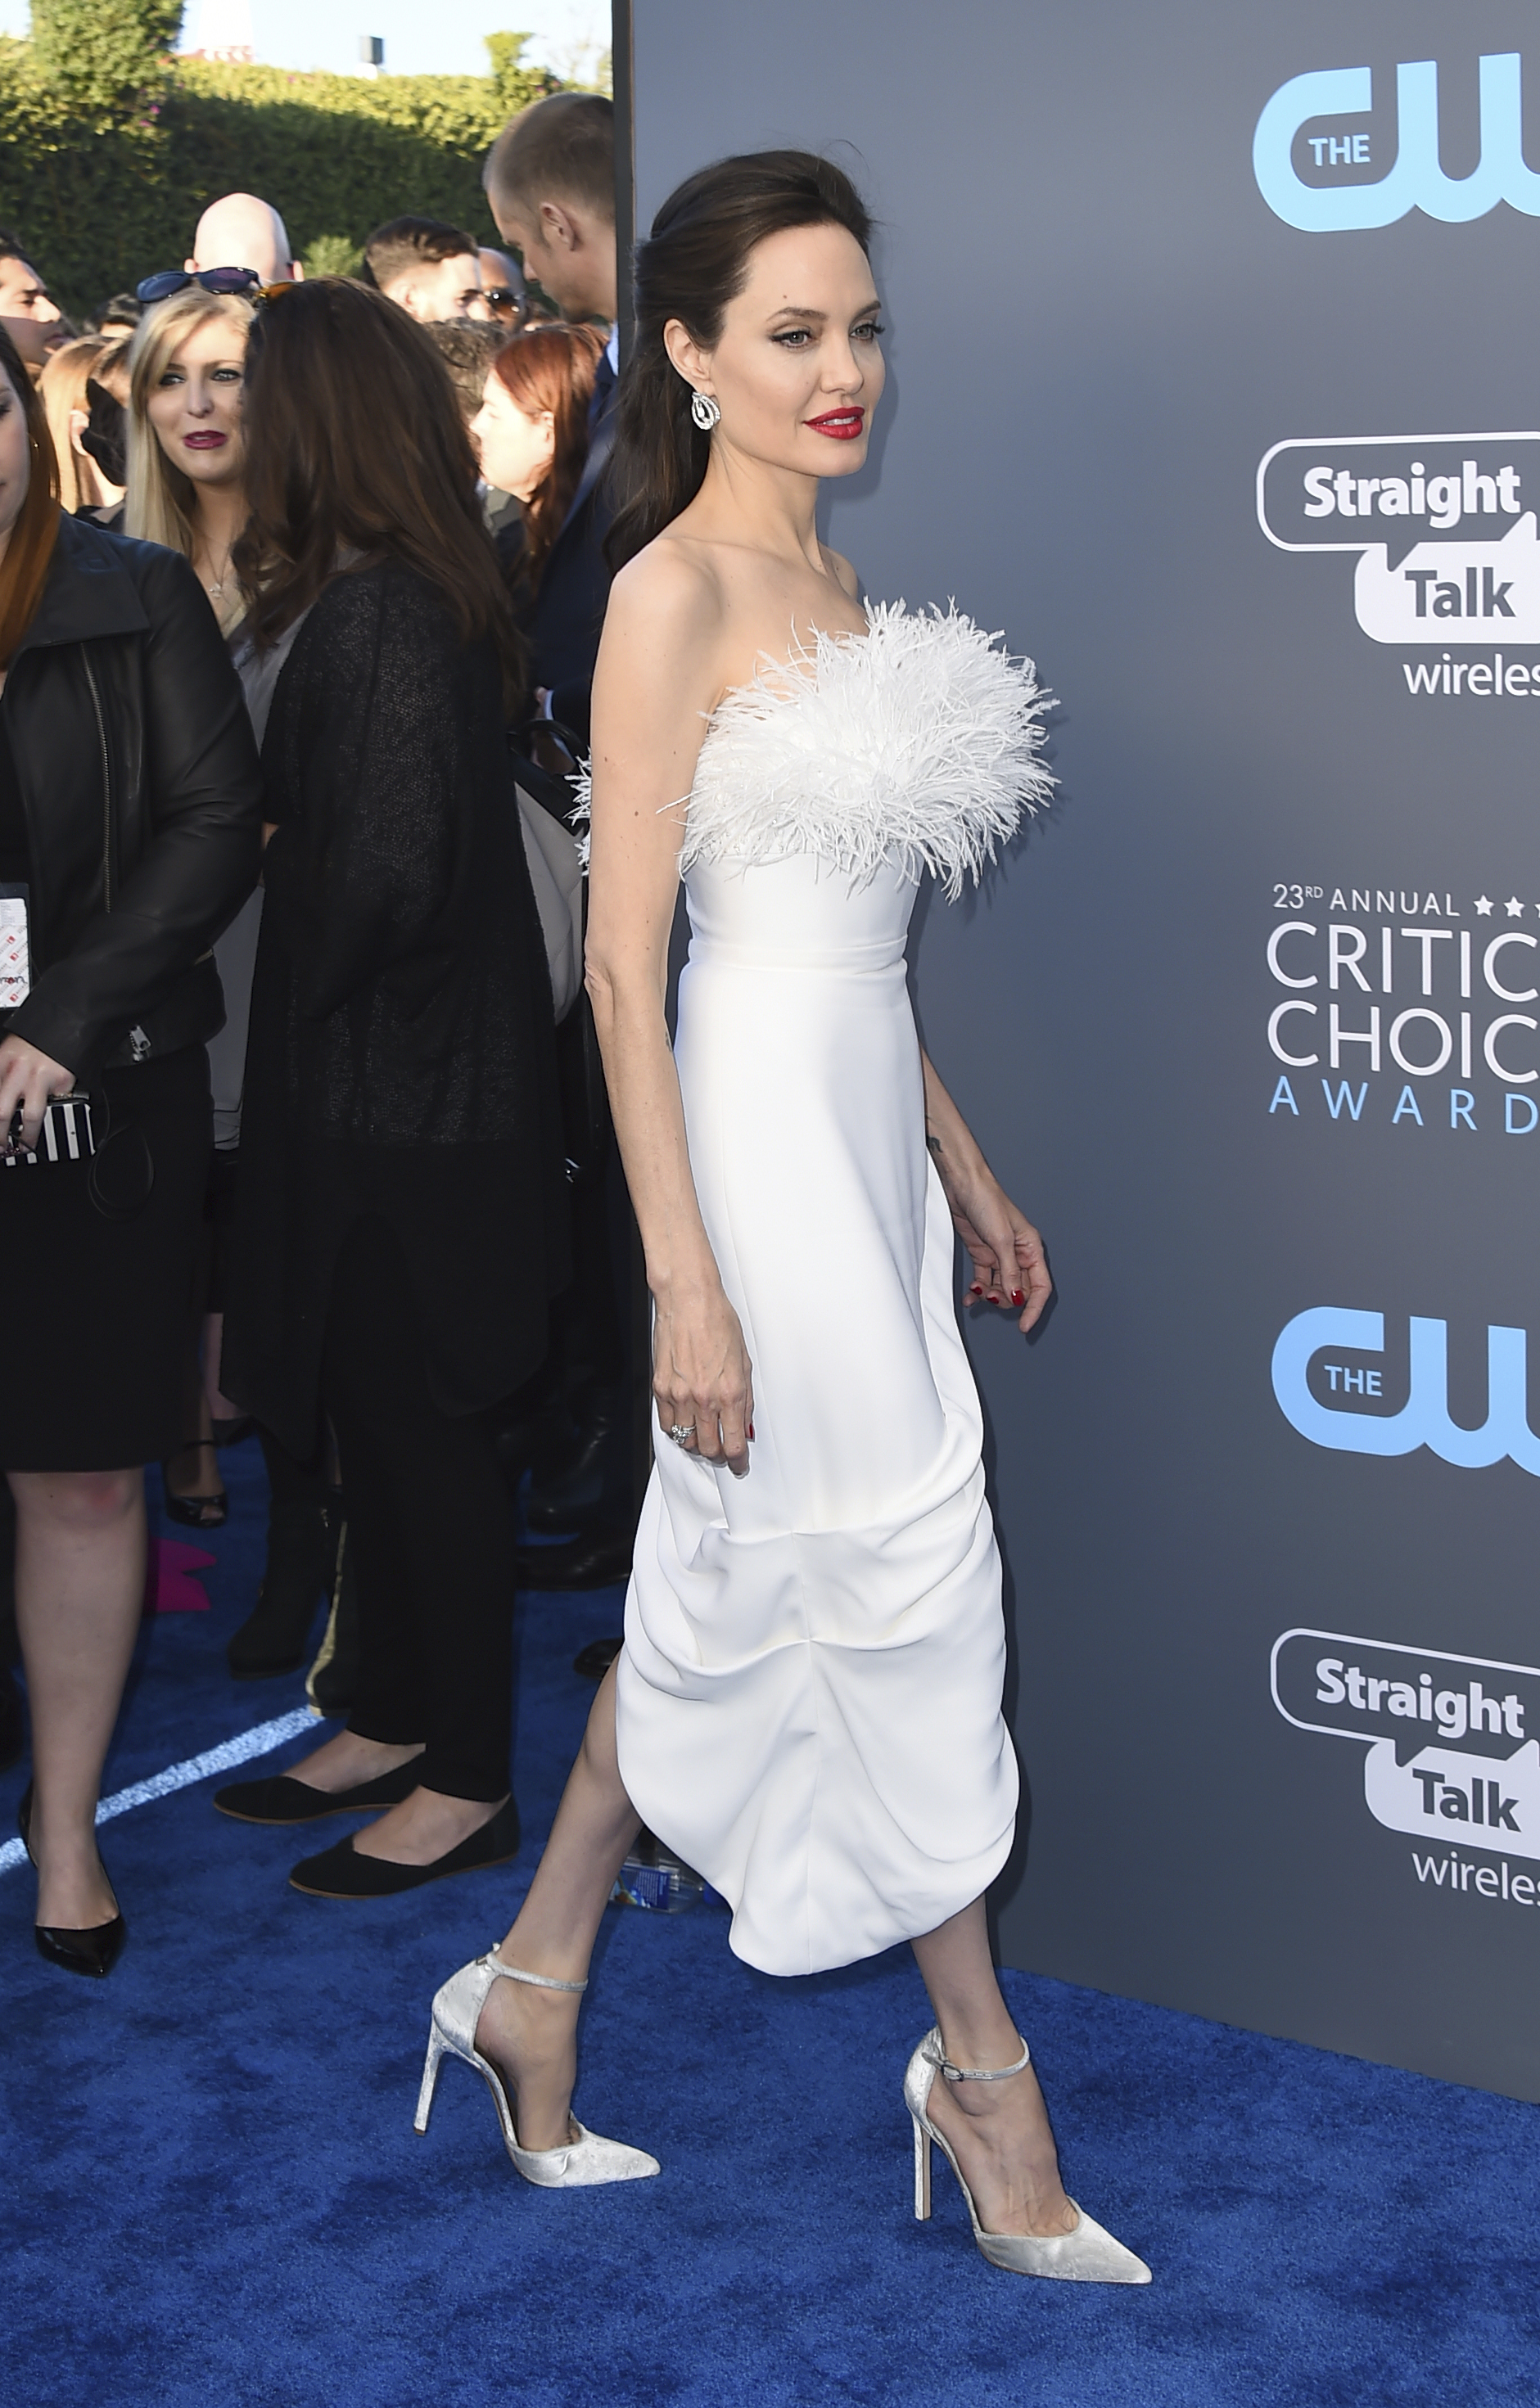 <div class='meta'><div class='origin-logo' data-origin='AP'></div><span class='caption-text' data-credit='Jordan Strauss/Invision/AP'>Angelina Jolie arrives at the 23rd annual Critics' Choice Awards at the Barker Hangar on Thursday, Jan. 11, 2018, in Santa Monica, Calif.</span></div>